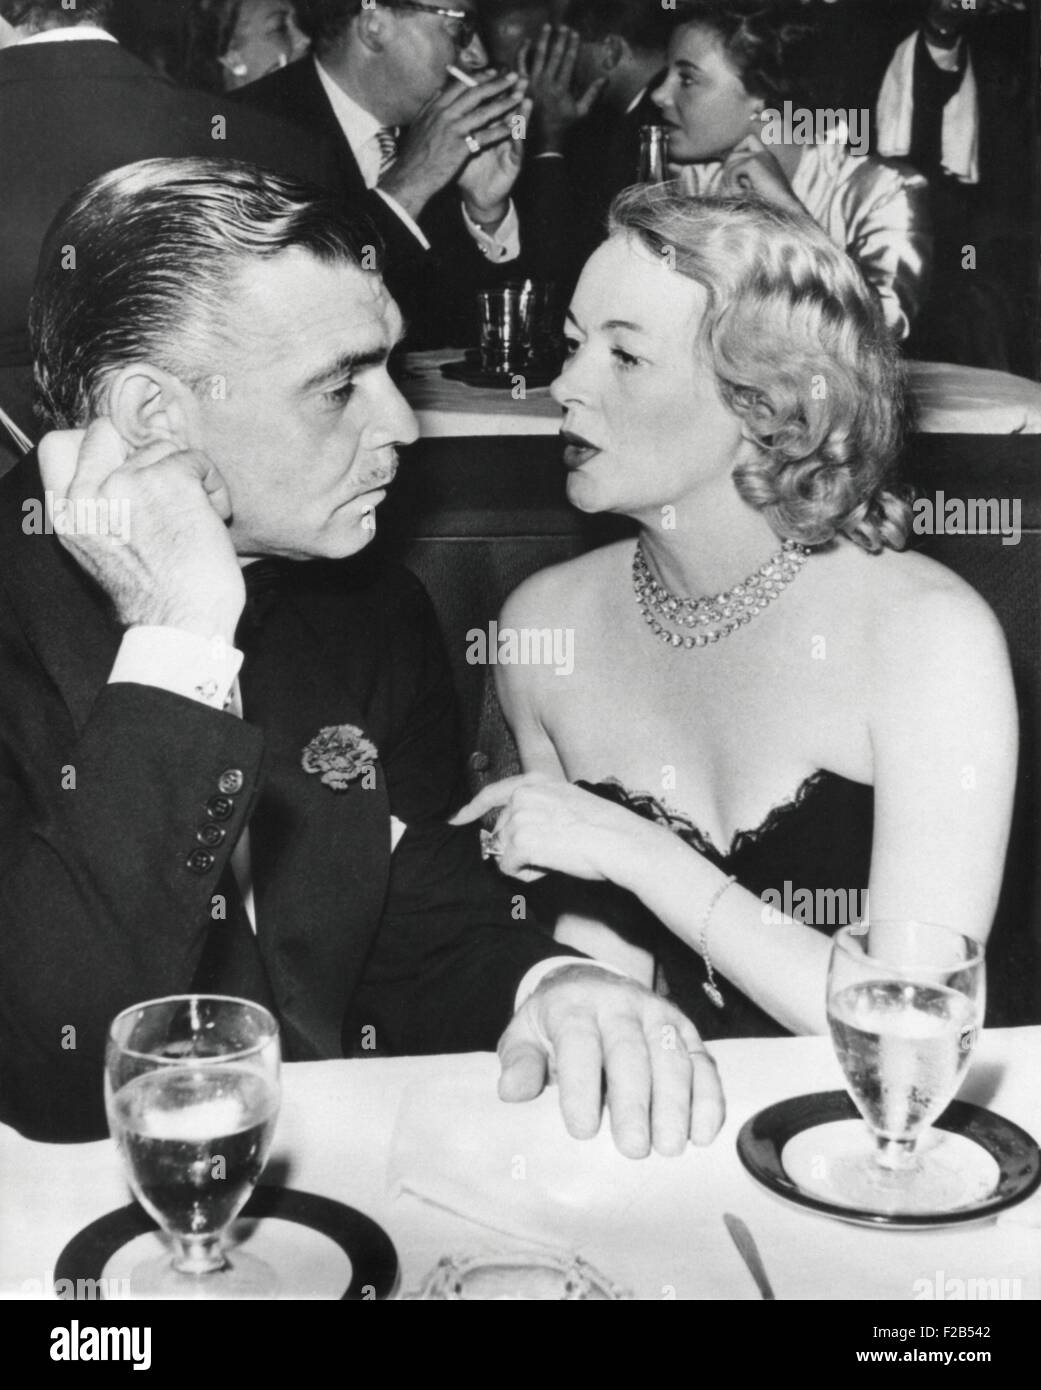 Clark Gable and Sylvia Ashley Alderly in a Los Angeles Night Club before their marriage. They wed shortly after - Stock Image